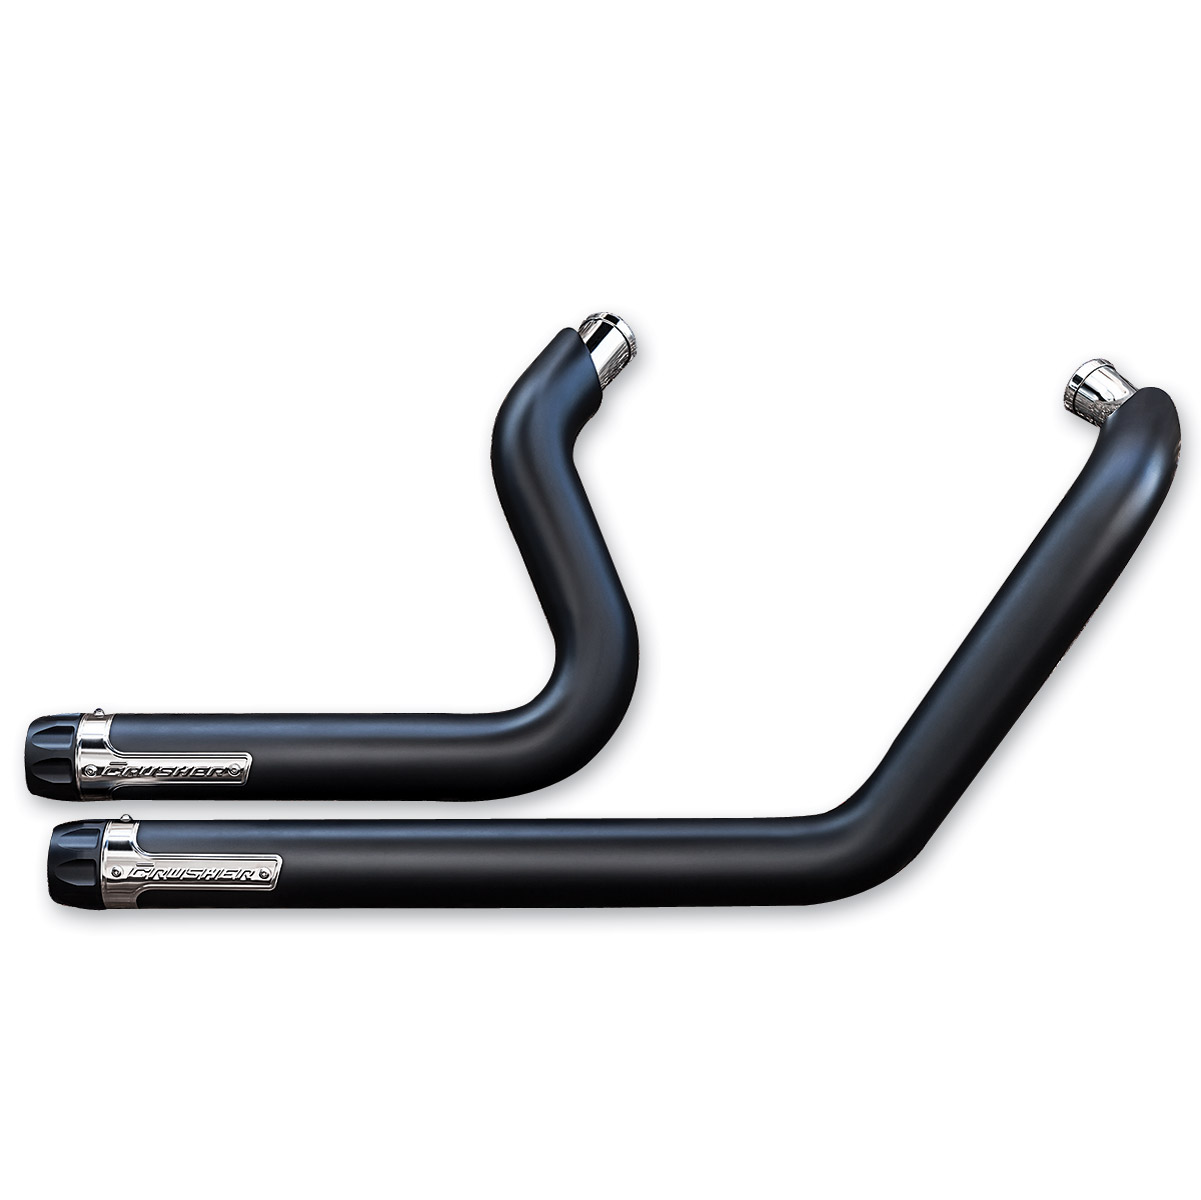 Crusher Maverick Black 2-into-2 Exhaust System